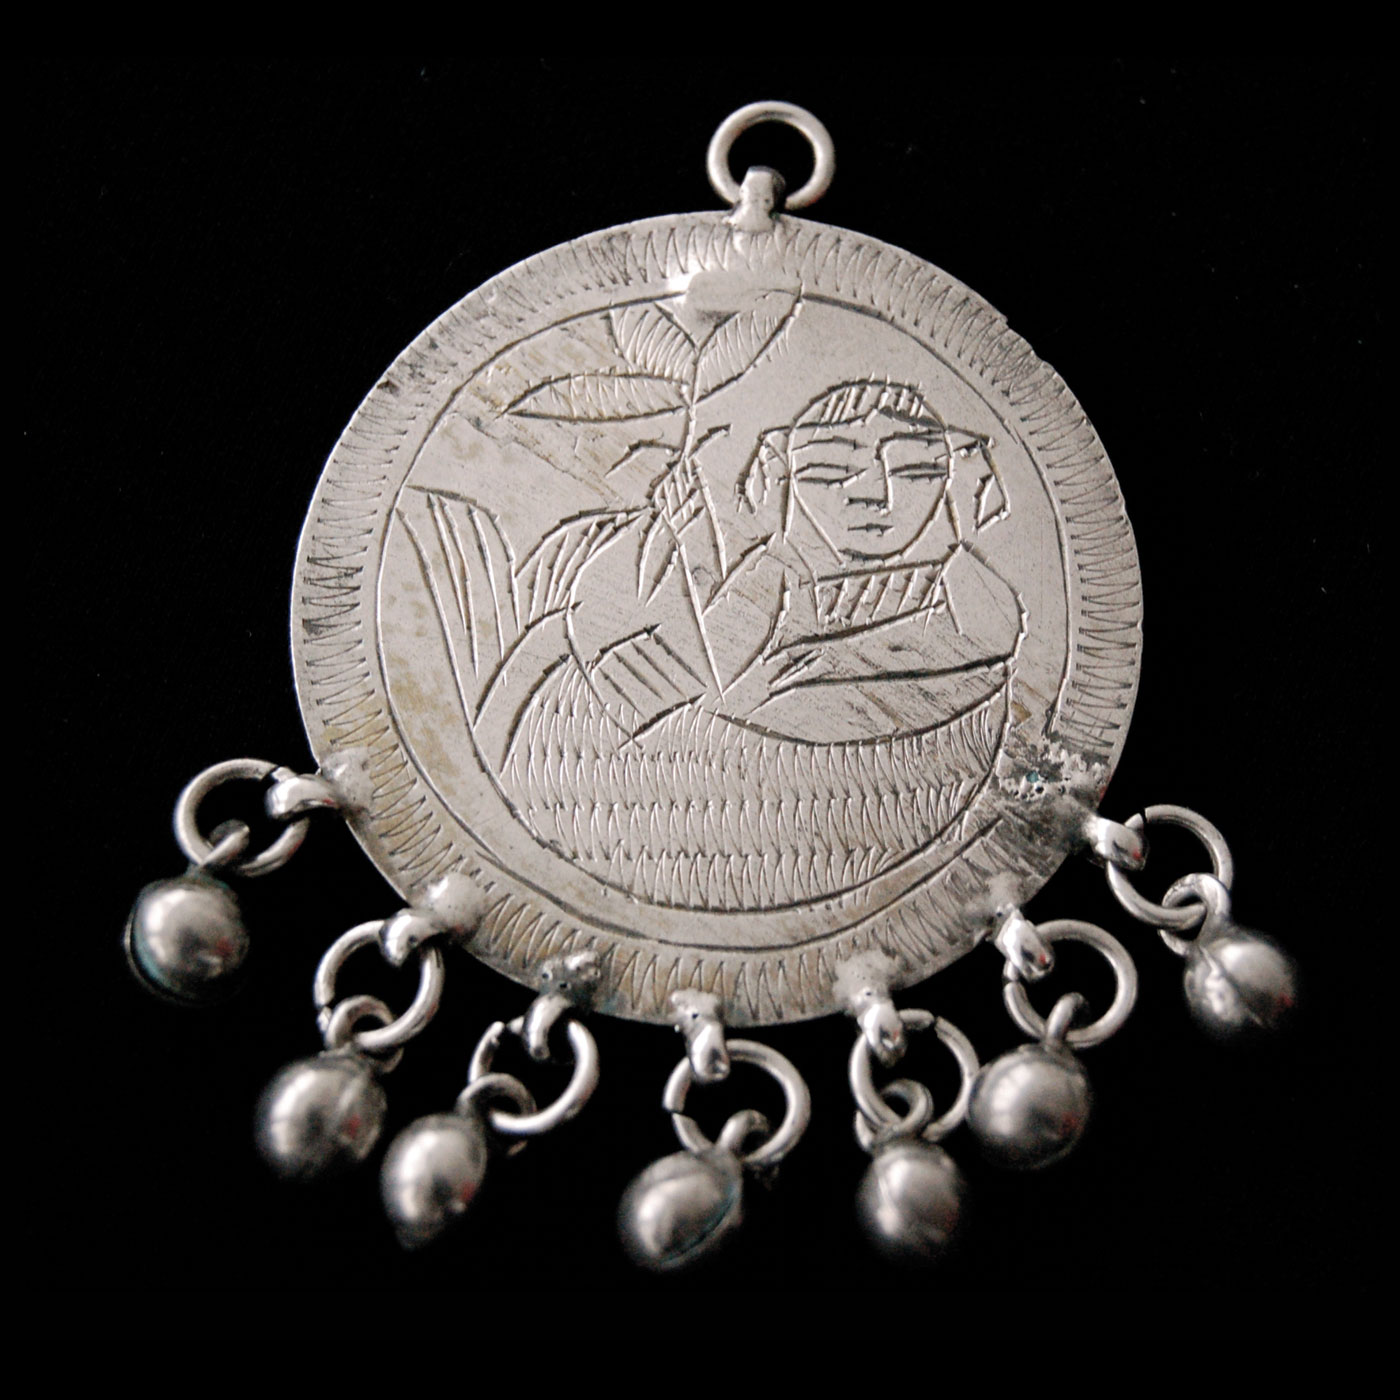 Egyptian Zar Jewelry:  SILVER ZAR PENDANTS FEATURING THE MERMAID SPIRIT SITT SAFINA; 1933.  Photograph by Sigrid Van Roode.